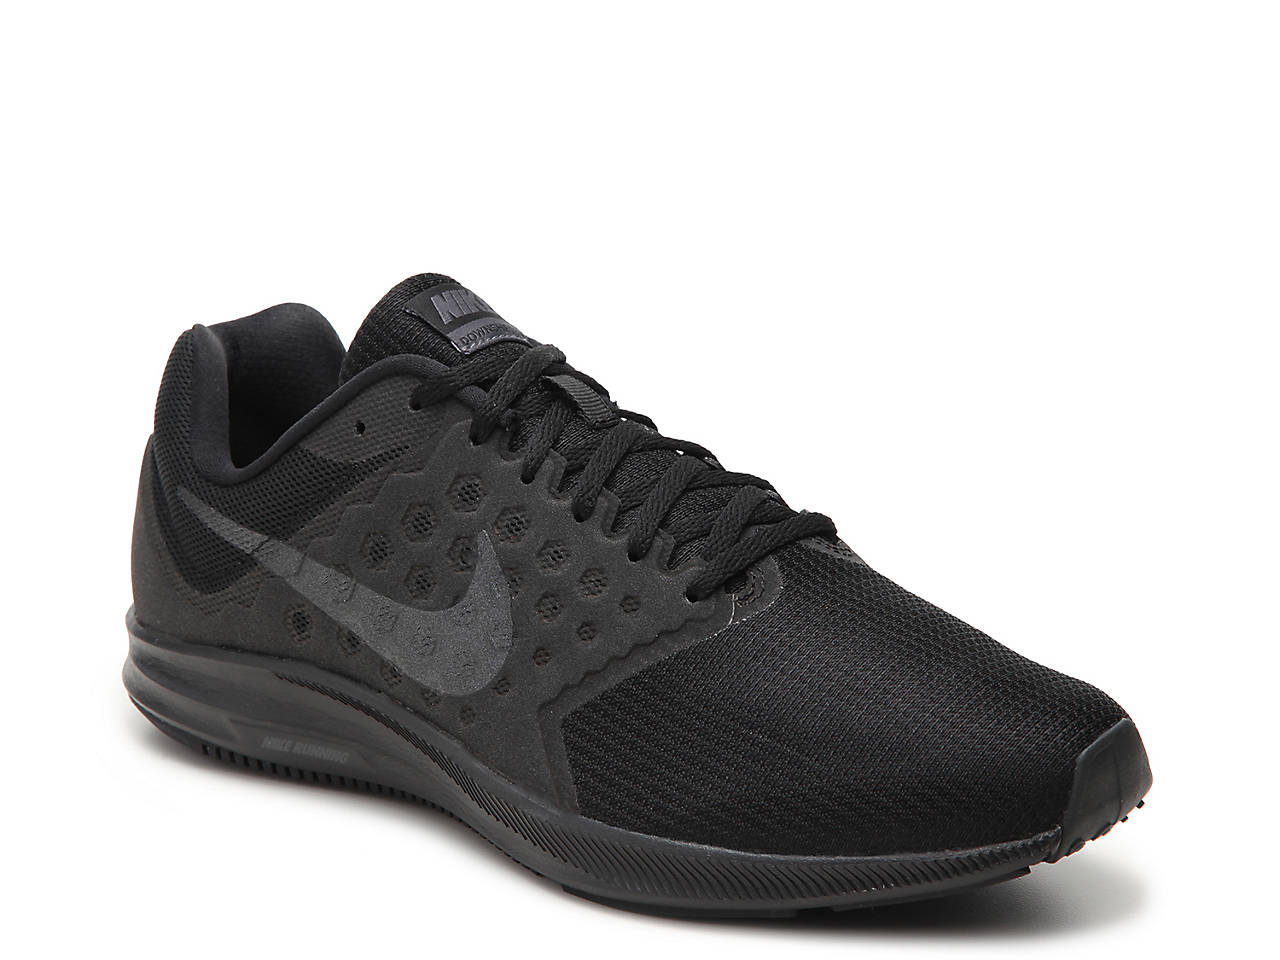 2cb446762abf8 Nike Downshifter 7 Lightweight Running Shoe - Men s Men s Shoes